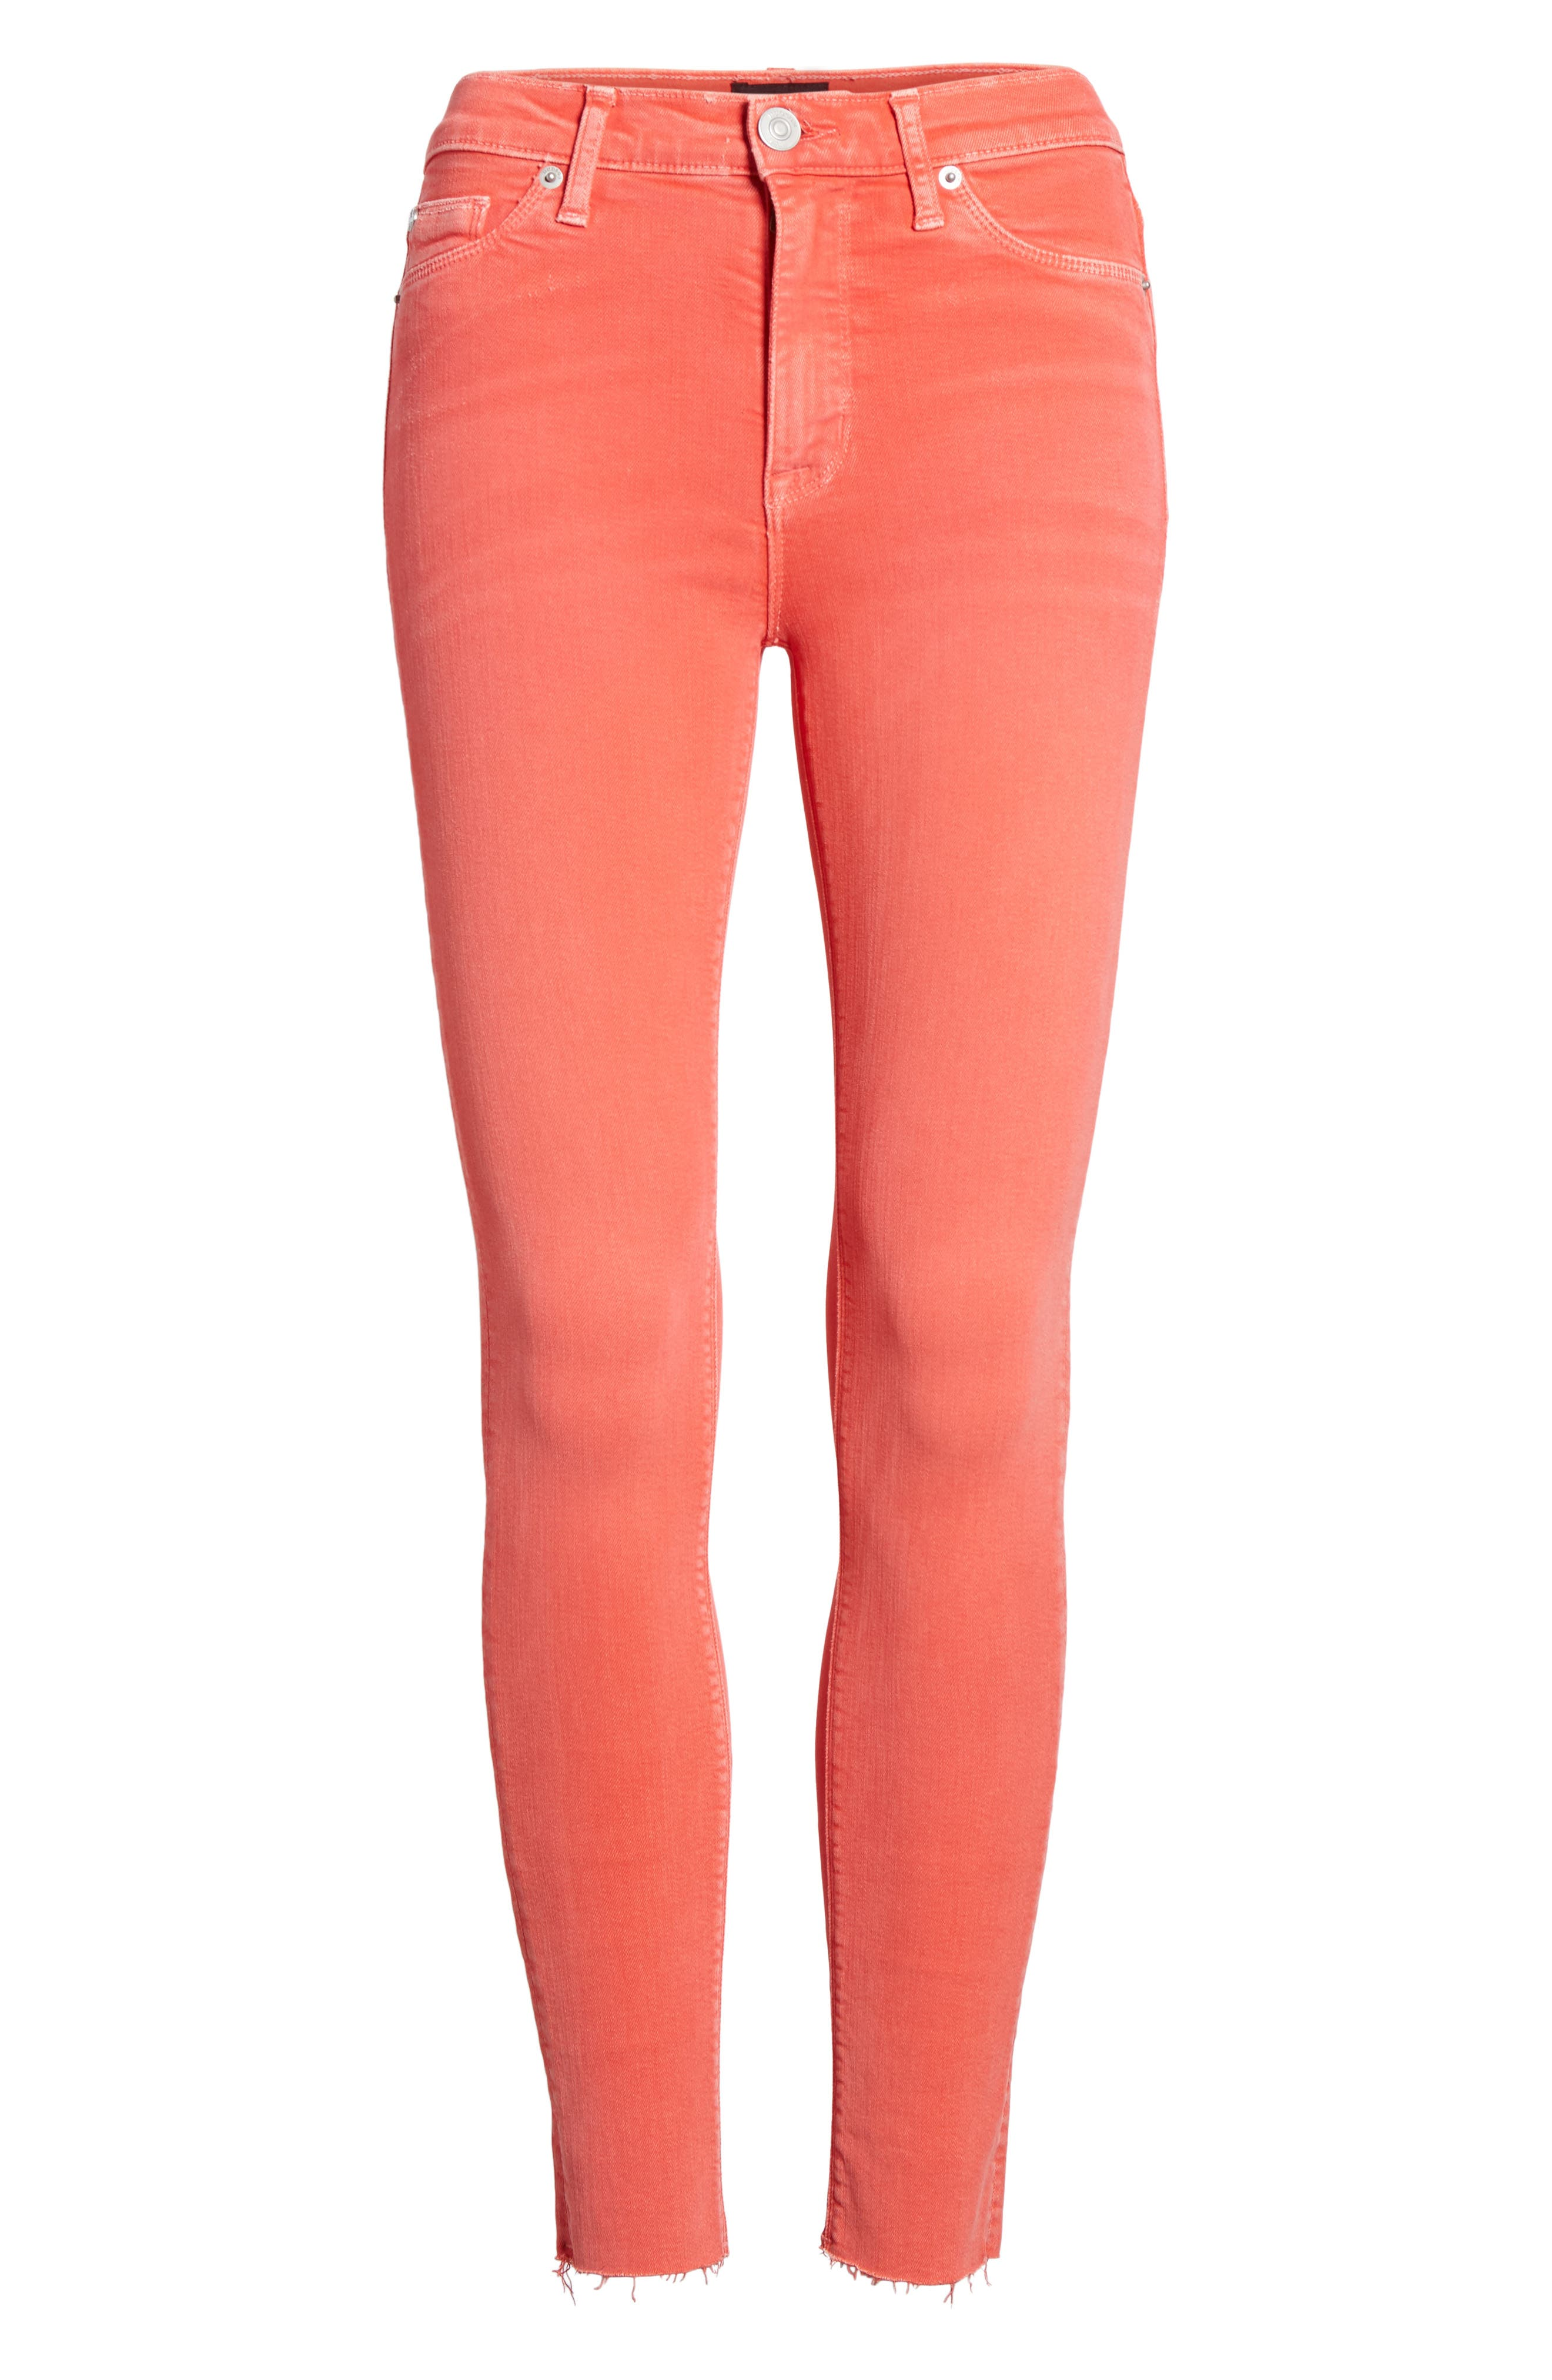 HUDSON JEANS,                             Tally Crop Skinny Jeans,                             Alternate thumbnail 7, color,                             640